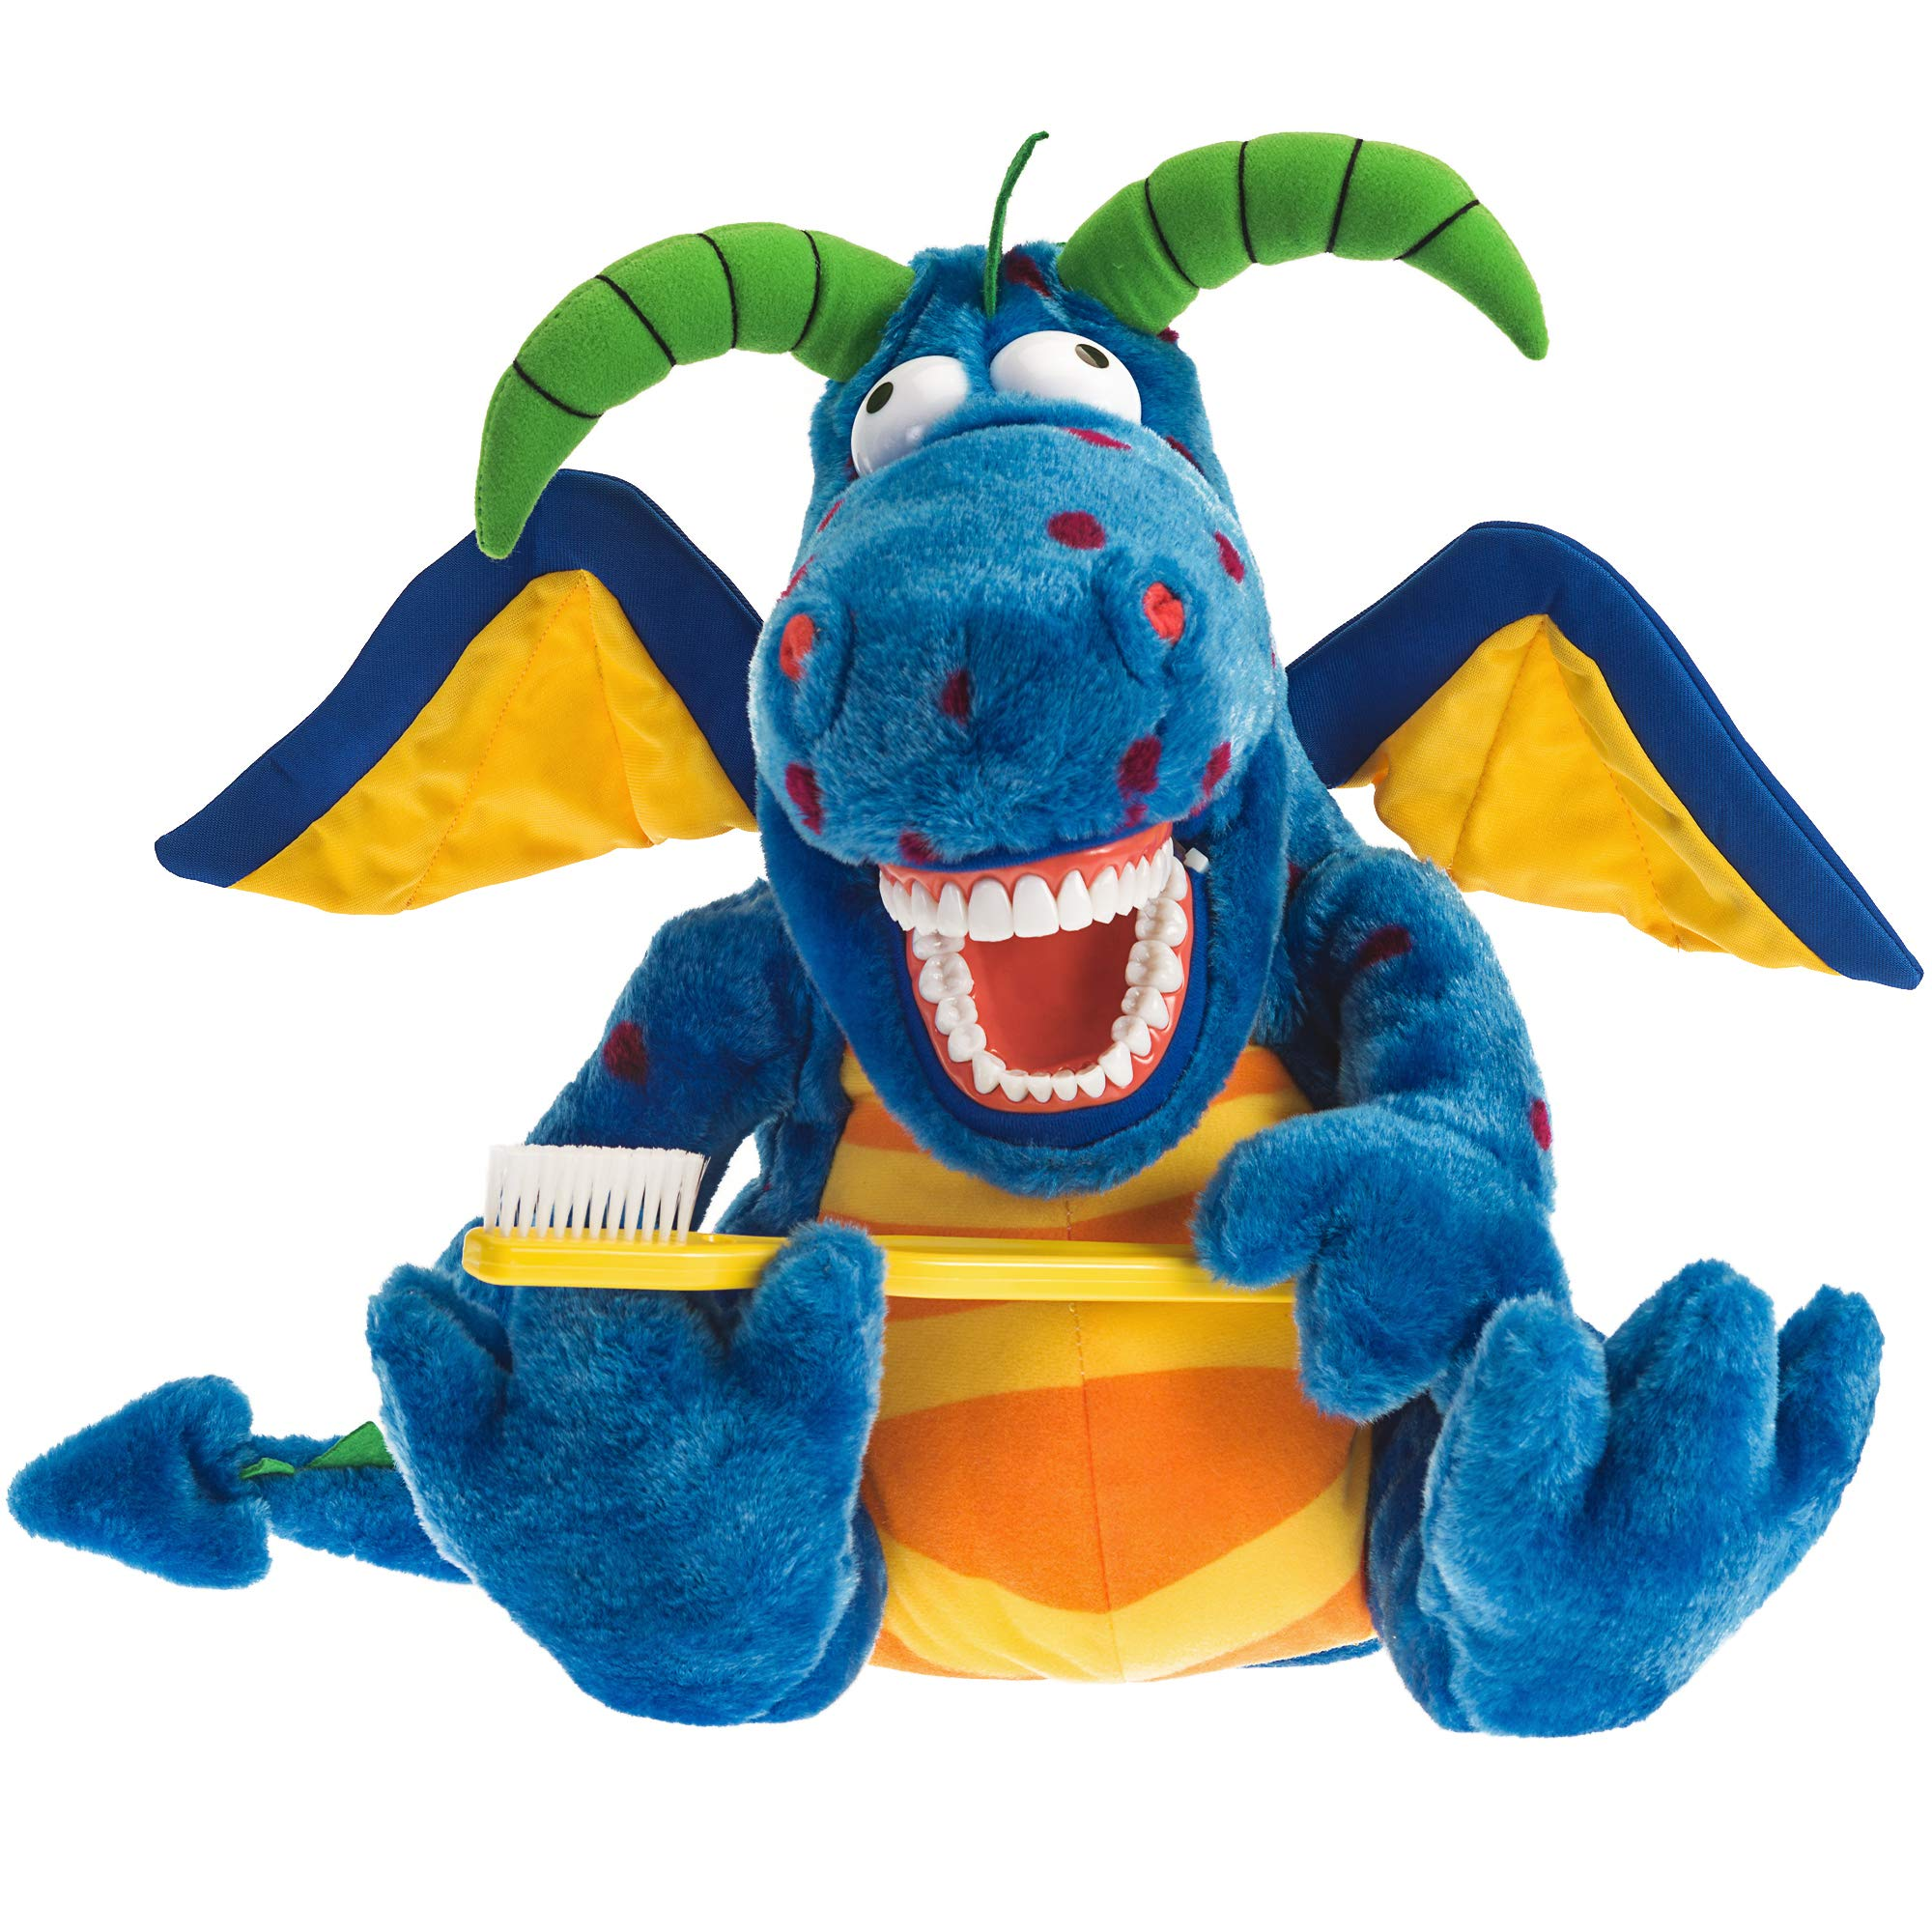 StarSmilez Kids Tooth Brushing Buddy Magi Dragon - Plush Dental Education Helper Fully flossible - Present/Teach Children to Care for Mouth and Teeth